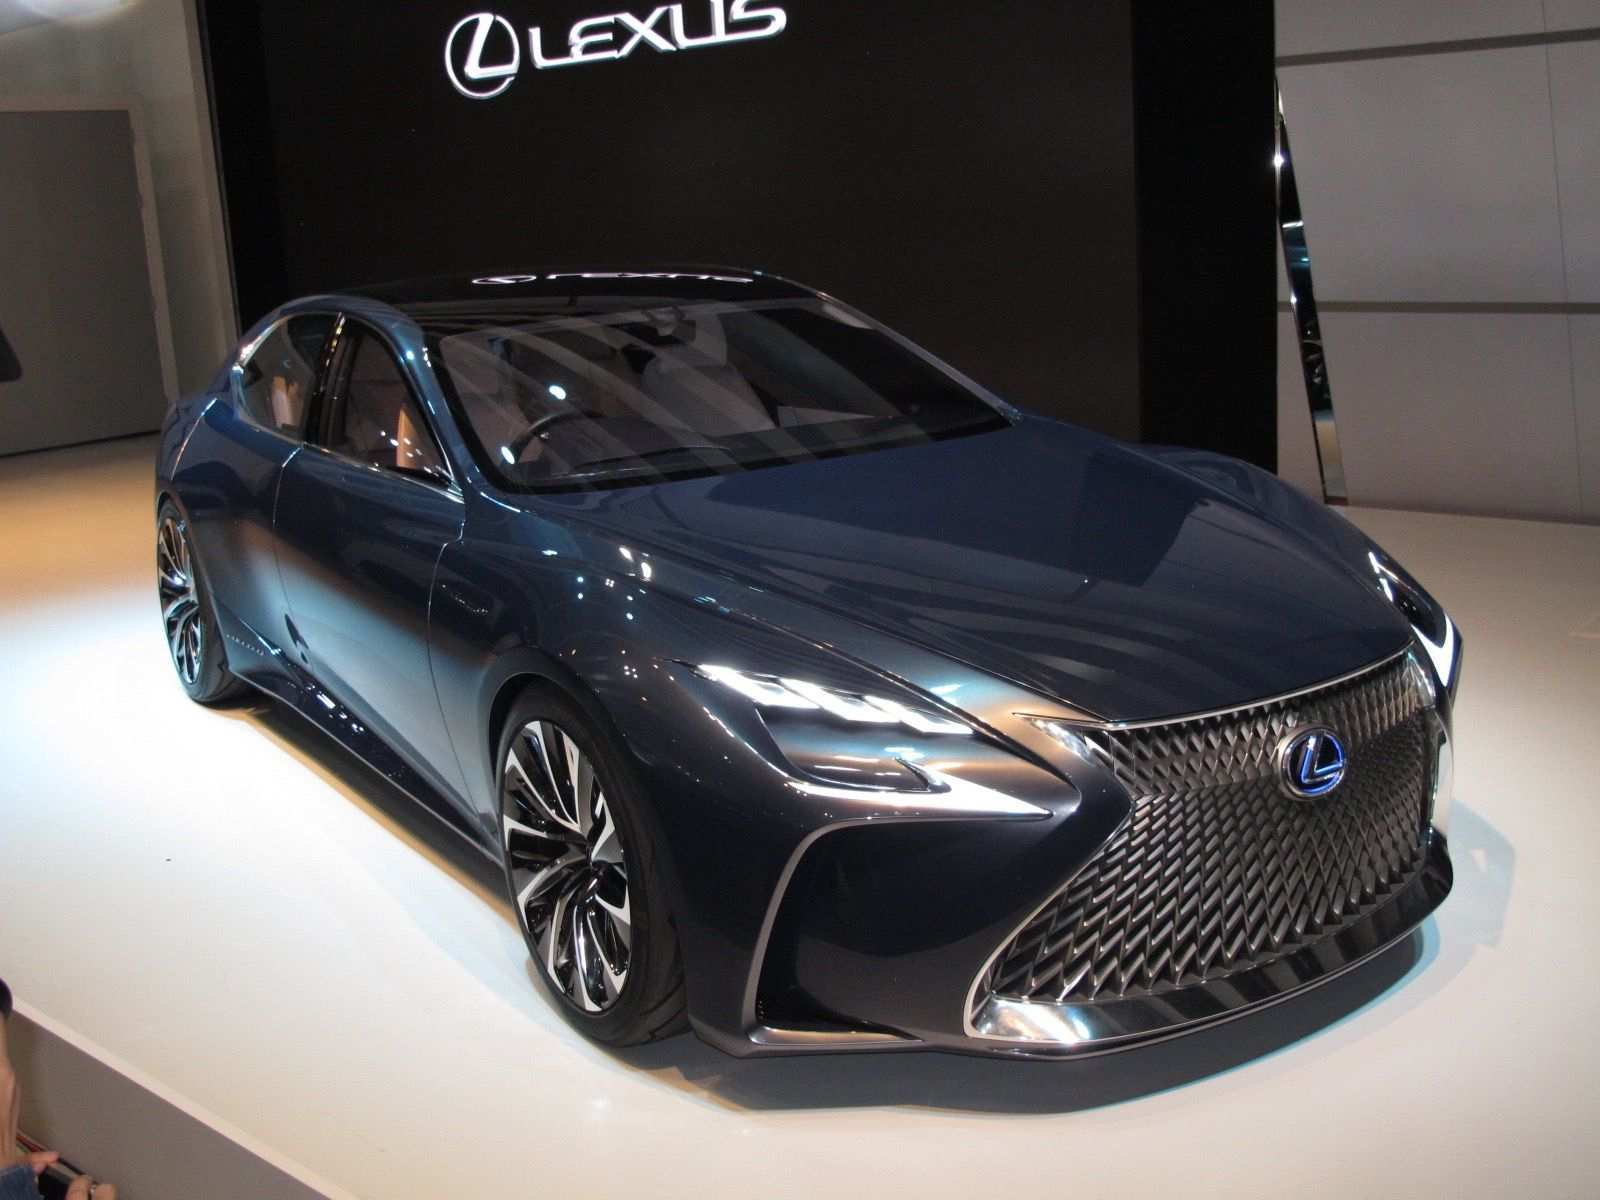 27 Great 2020 Lexus Vehicles Style by 2020 Lexus Vehicles